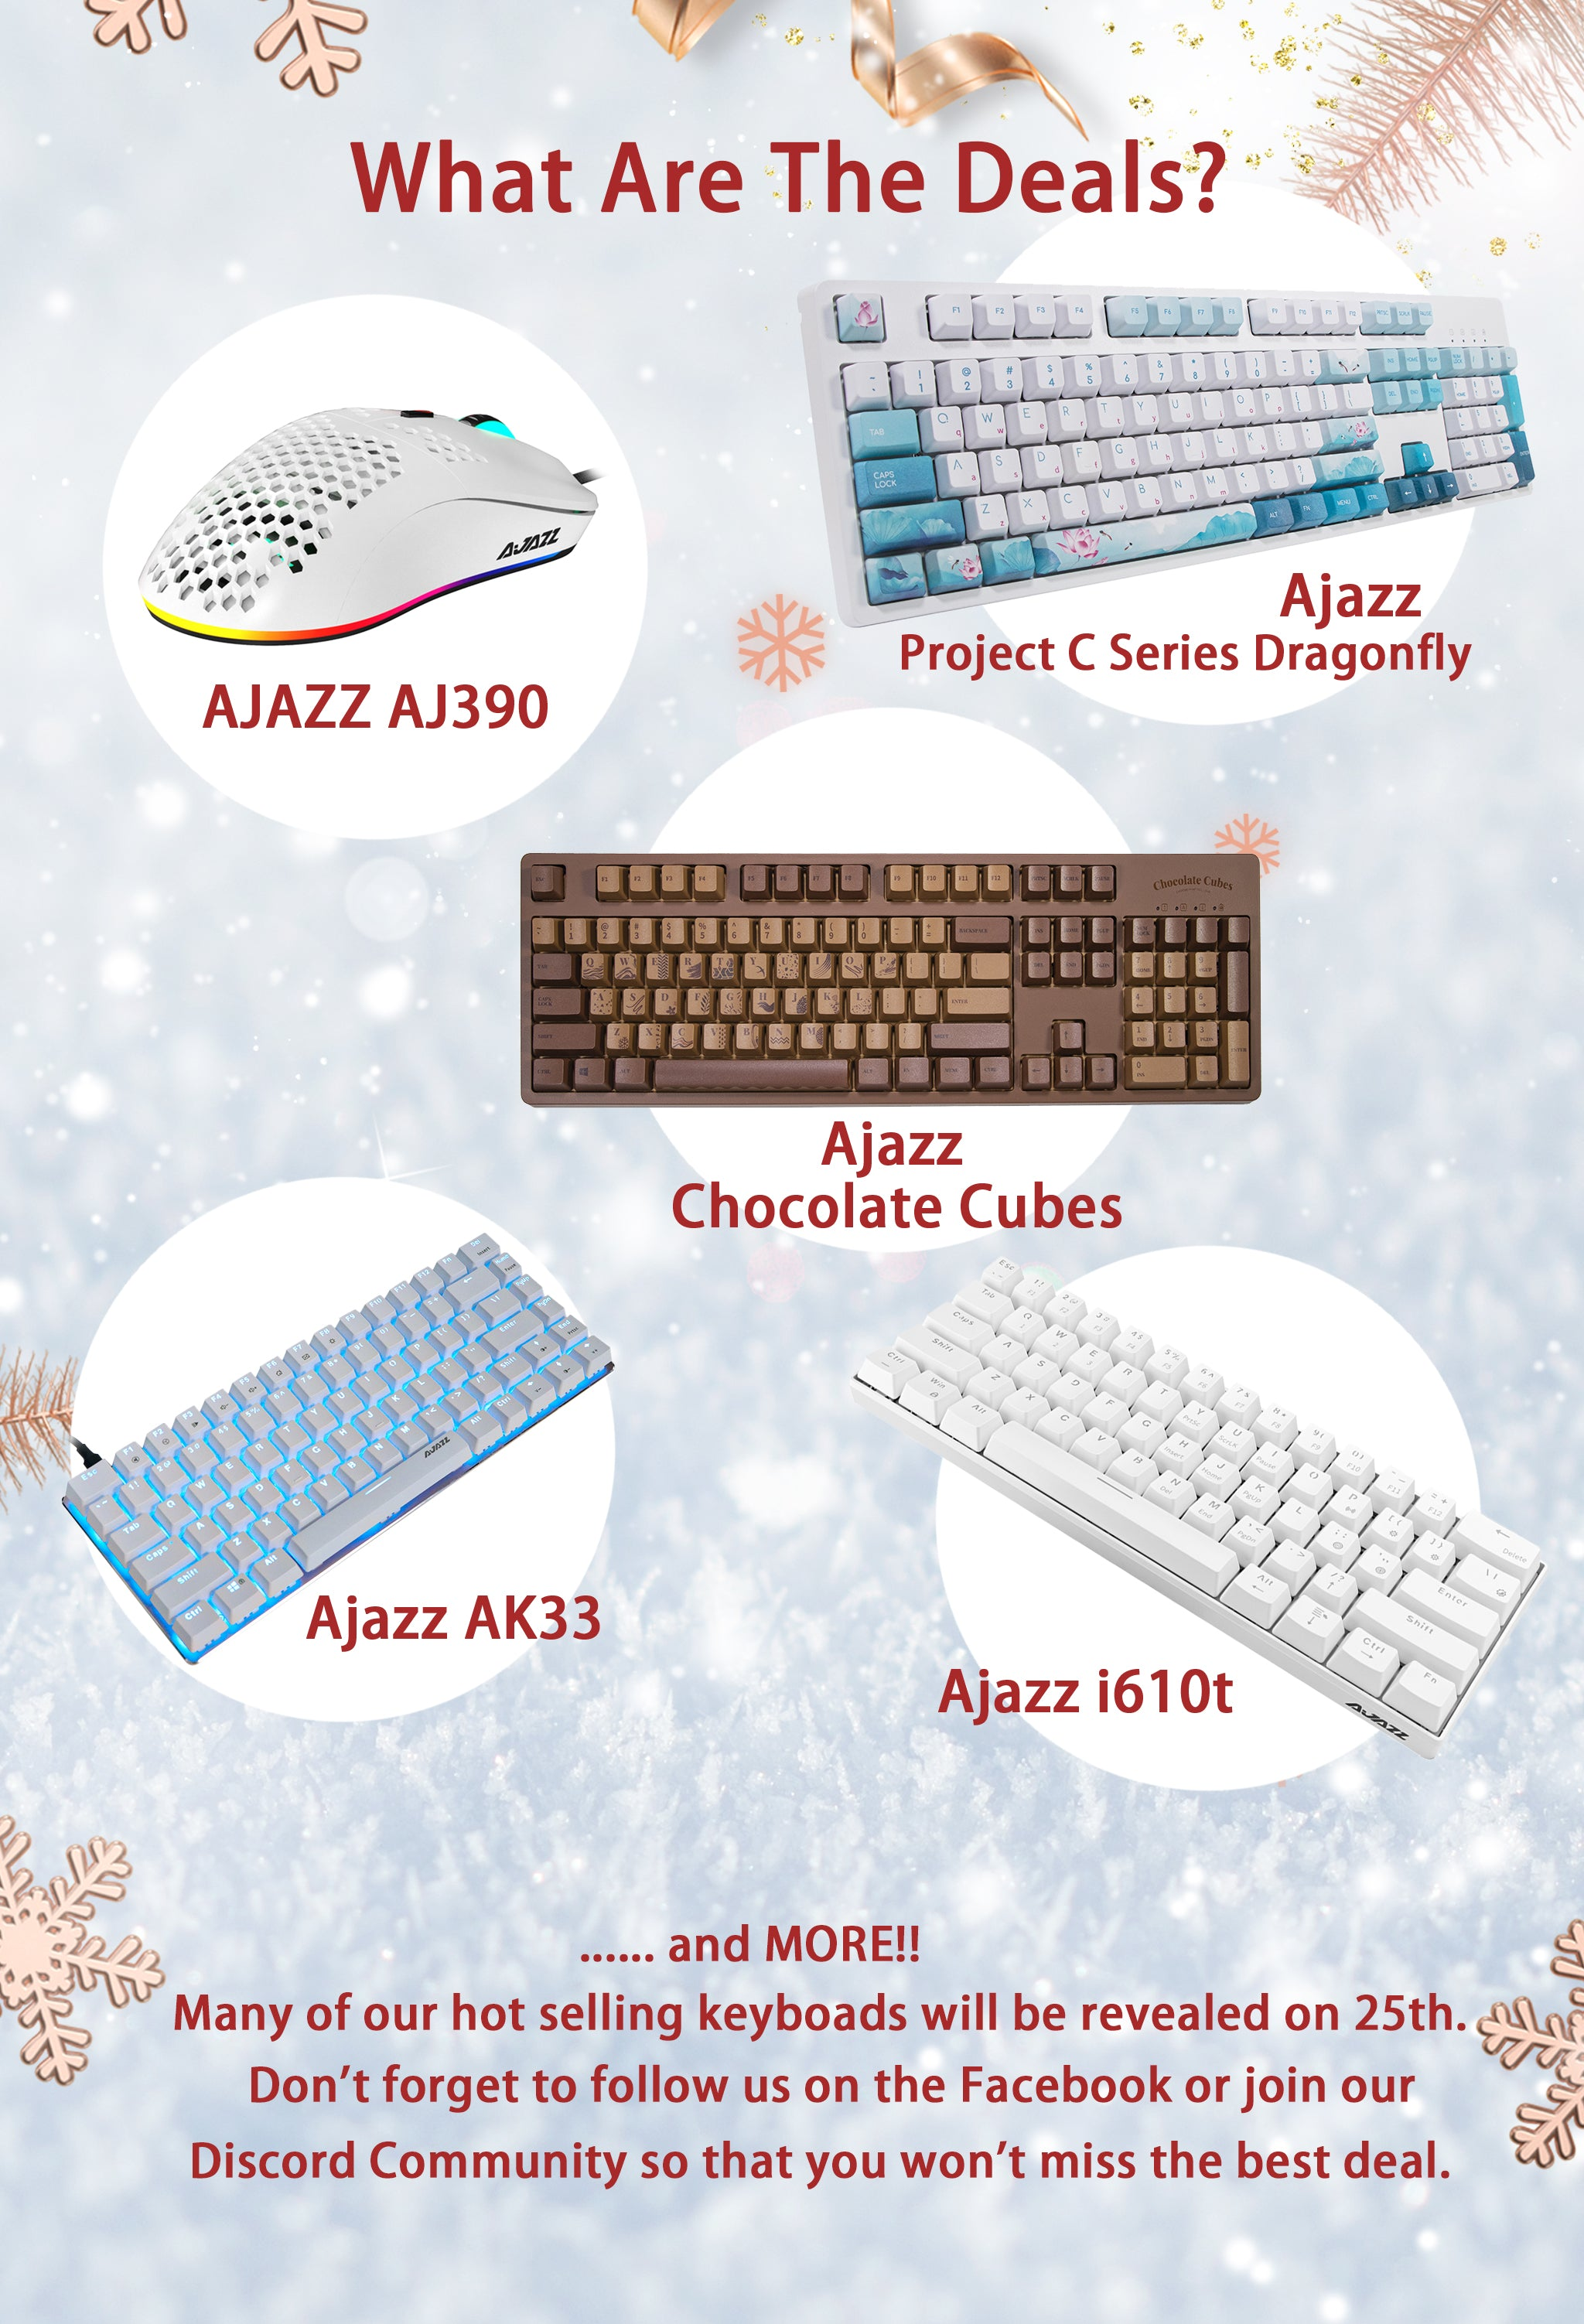 what are the deals Ajazz AJ390 Ajazz AK33 Ajazz i610t and more